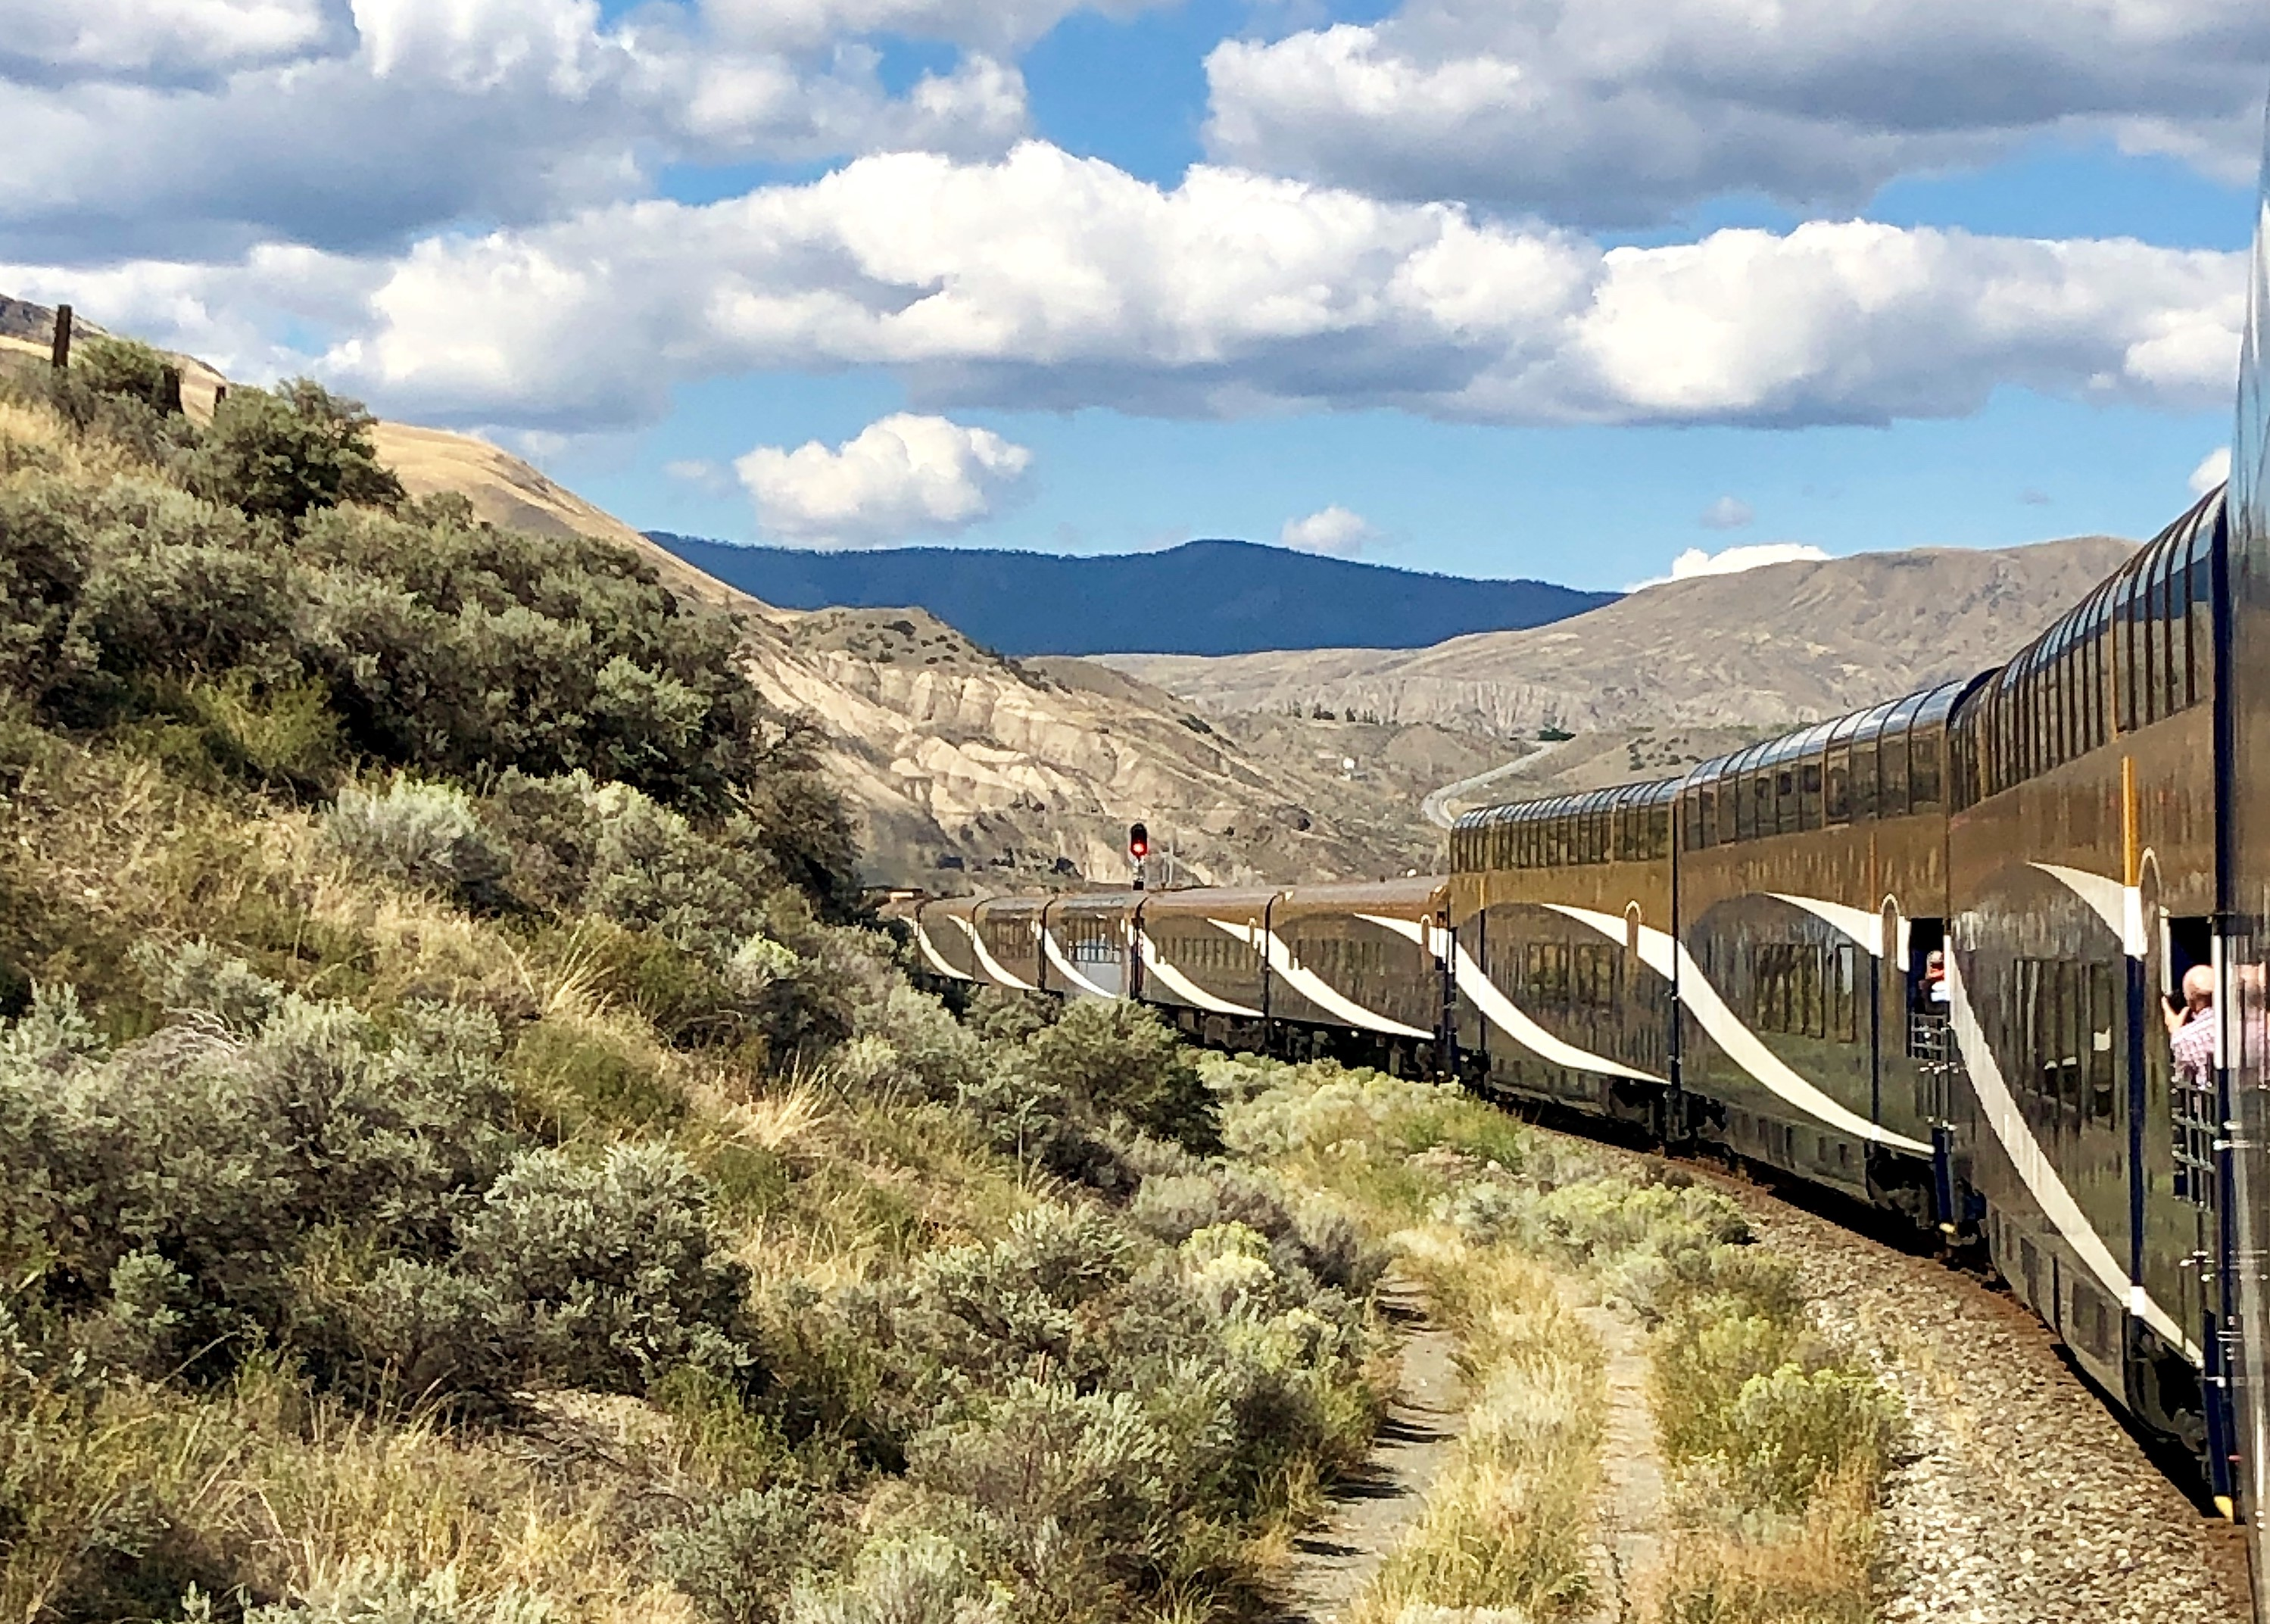 Rocky Mountaineer: An Iconic Rail Experience